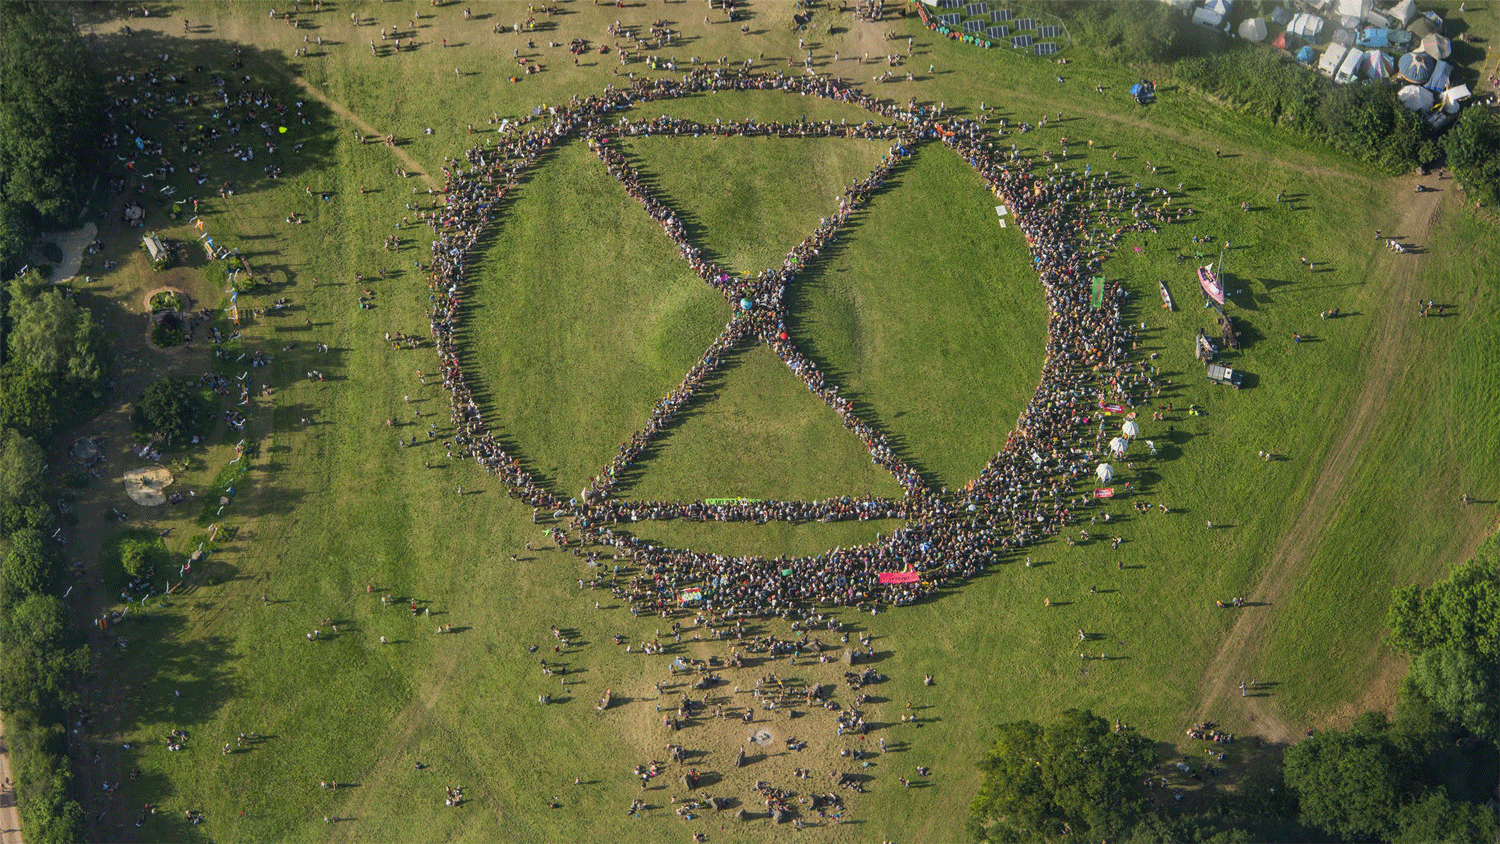 Extinction Rebellion Procession